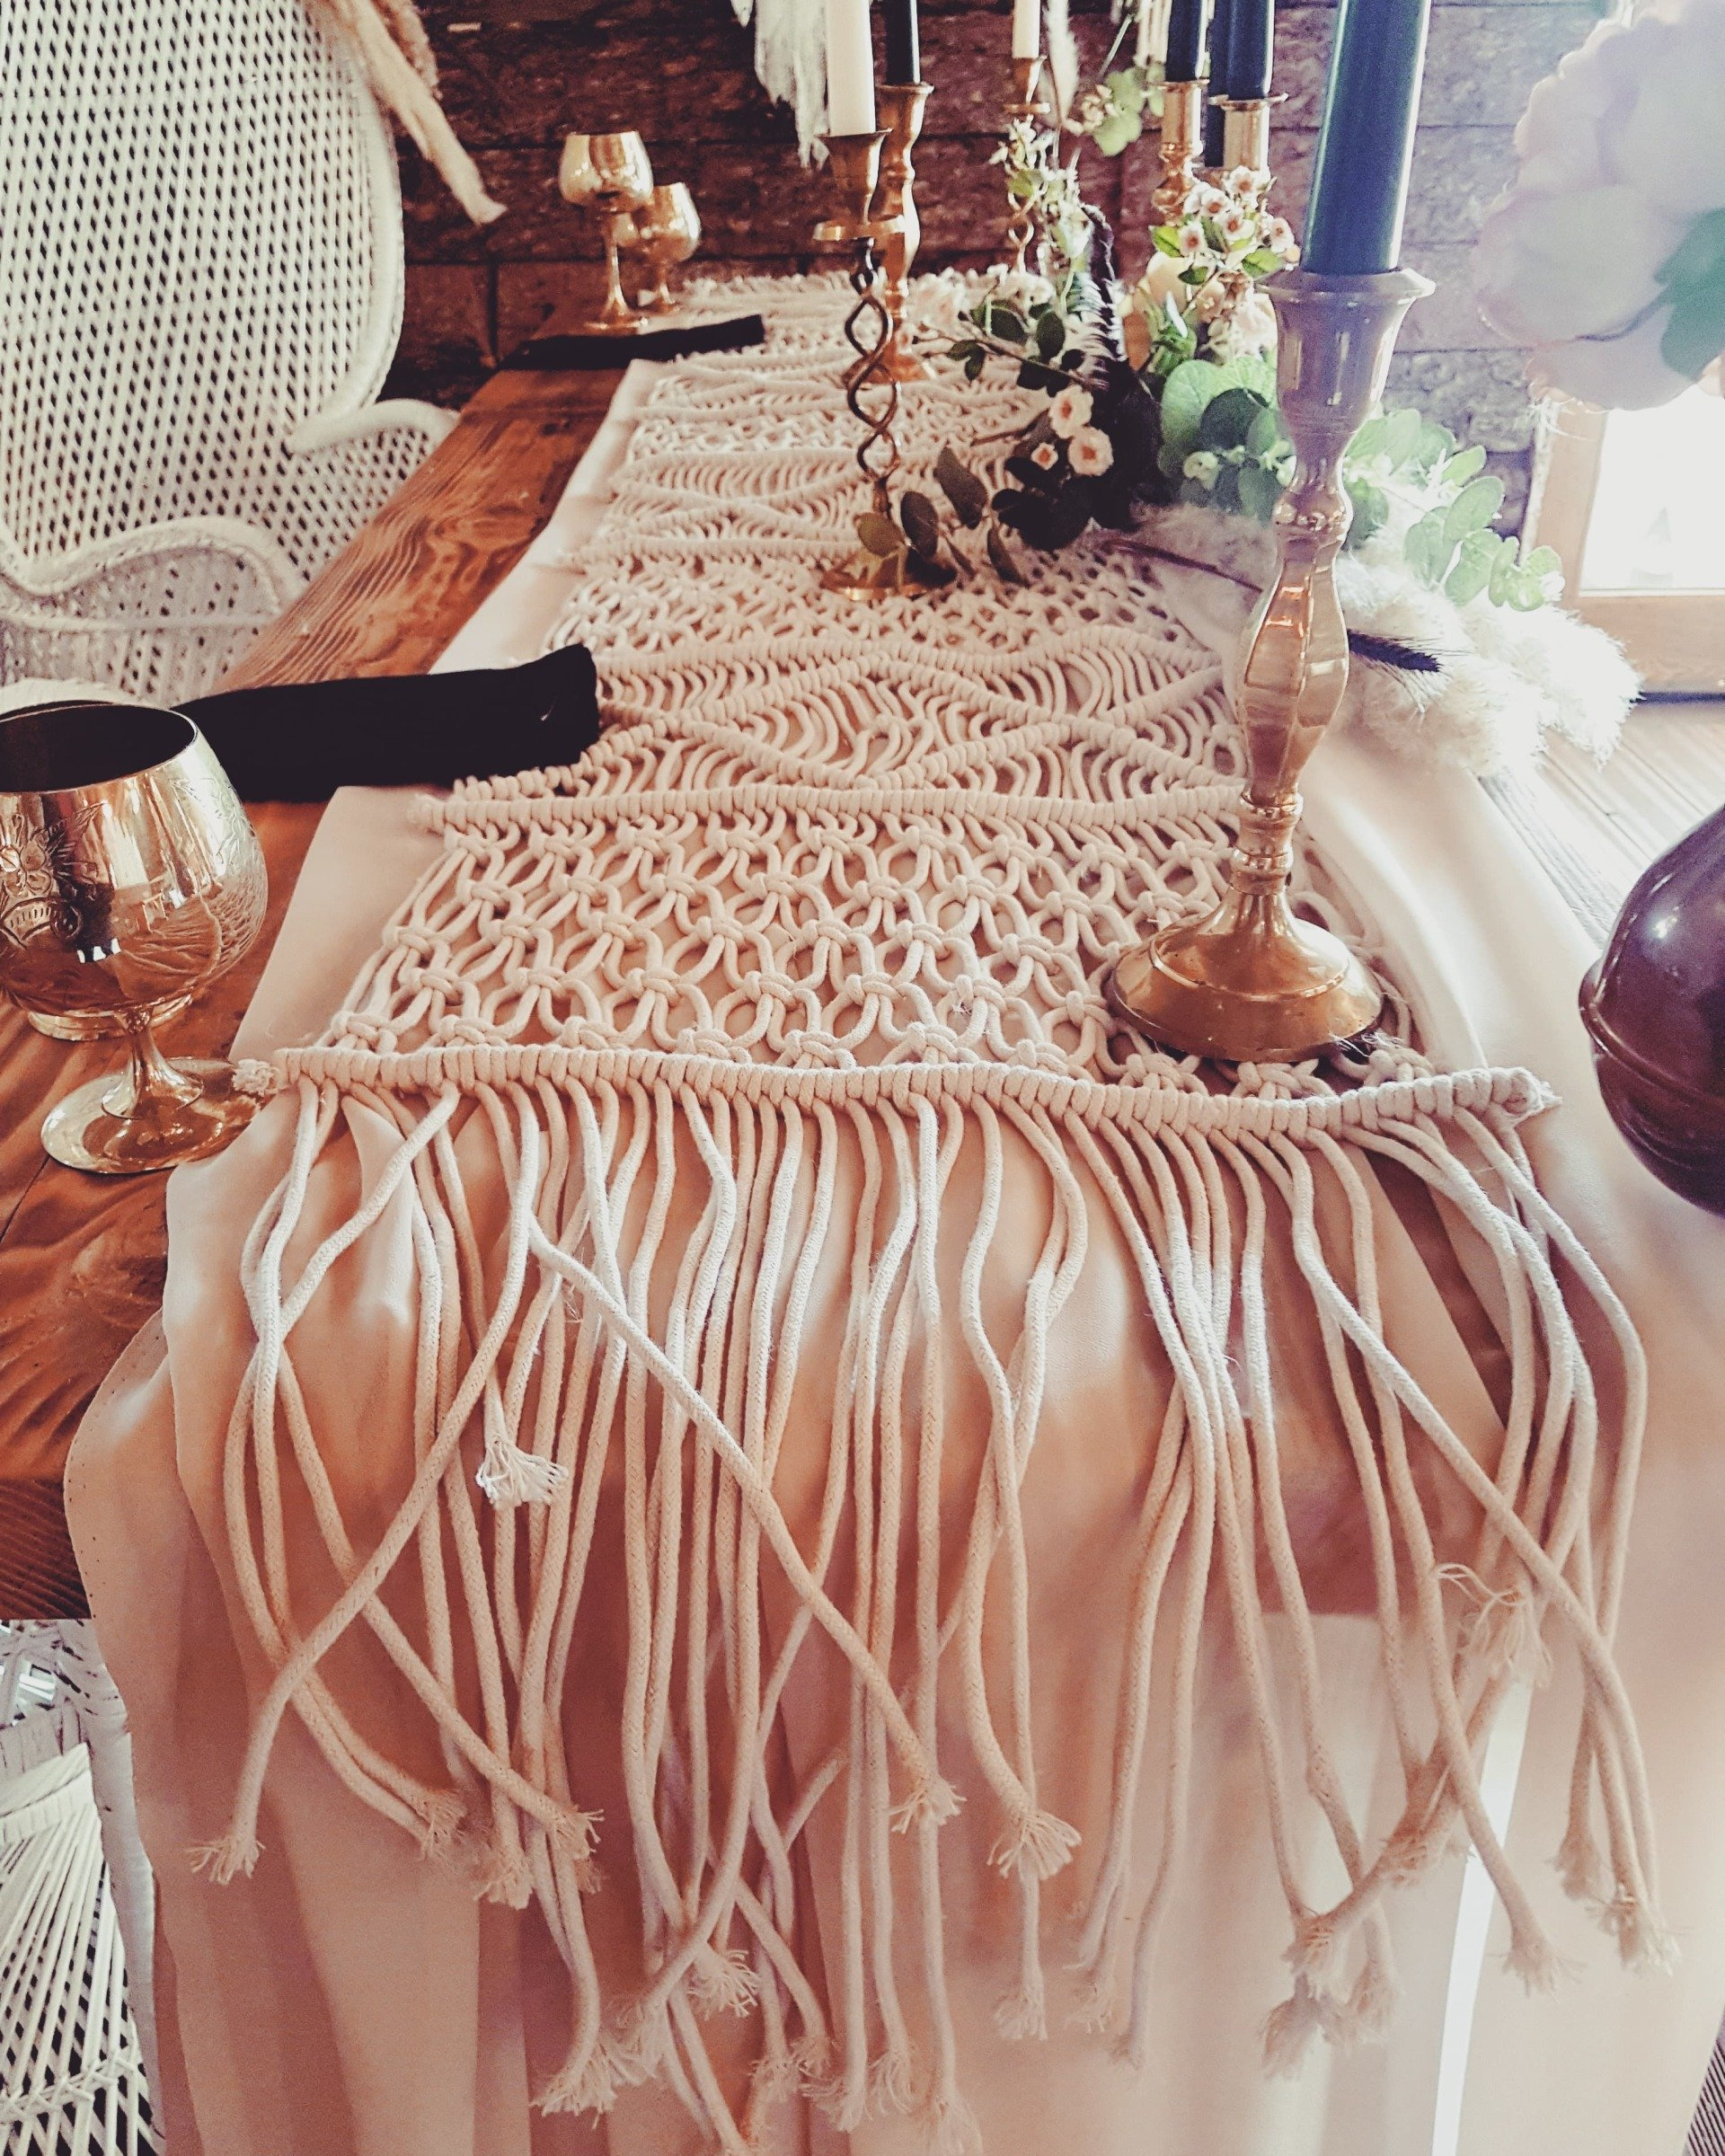 Wedding Altar Hire Uk: Born Boho Wedding Events Hire Chandelier Hire Bohemian Props